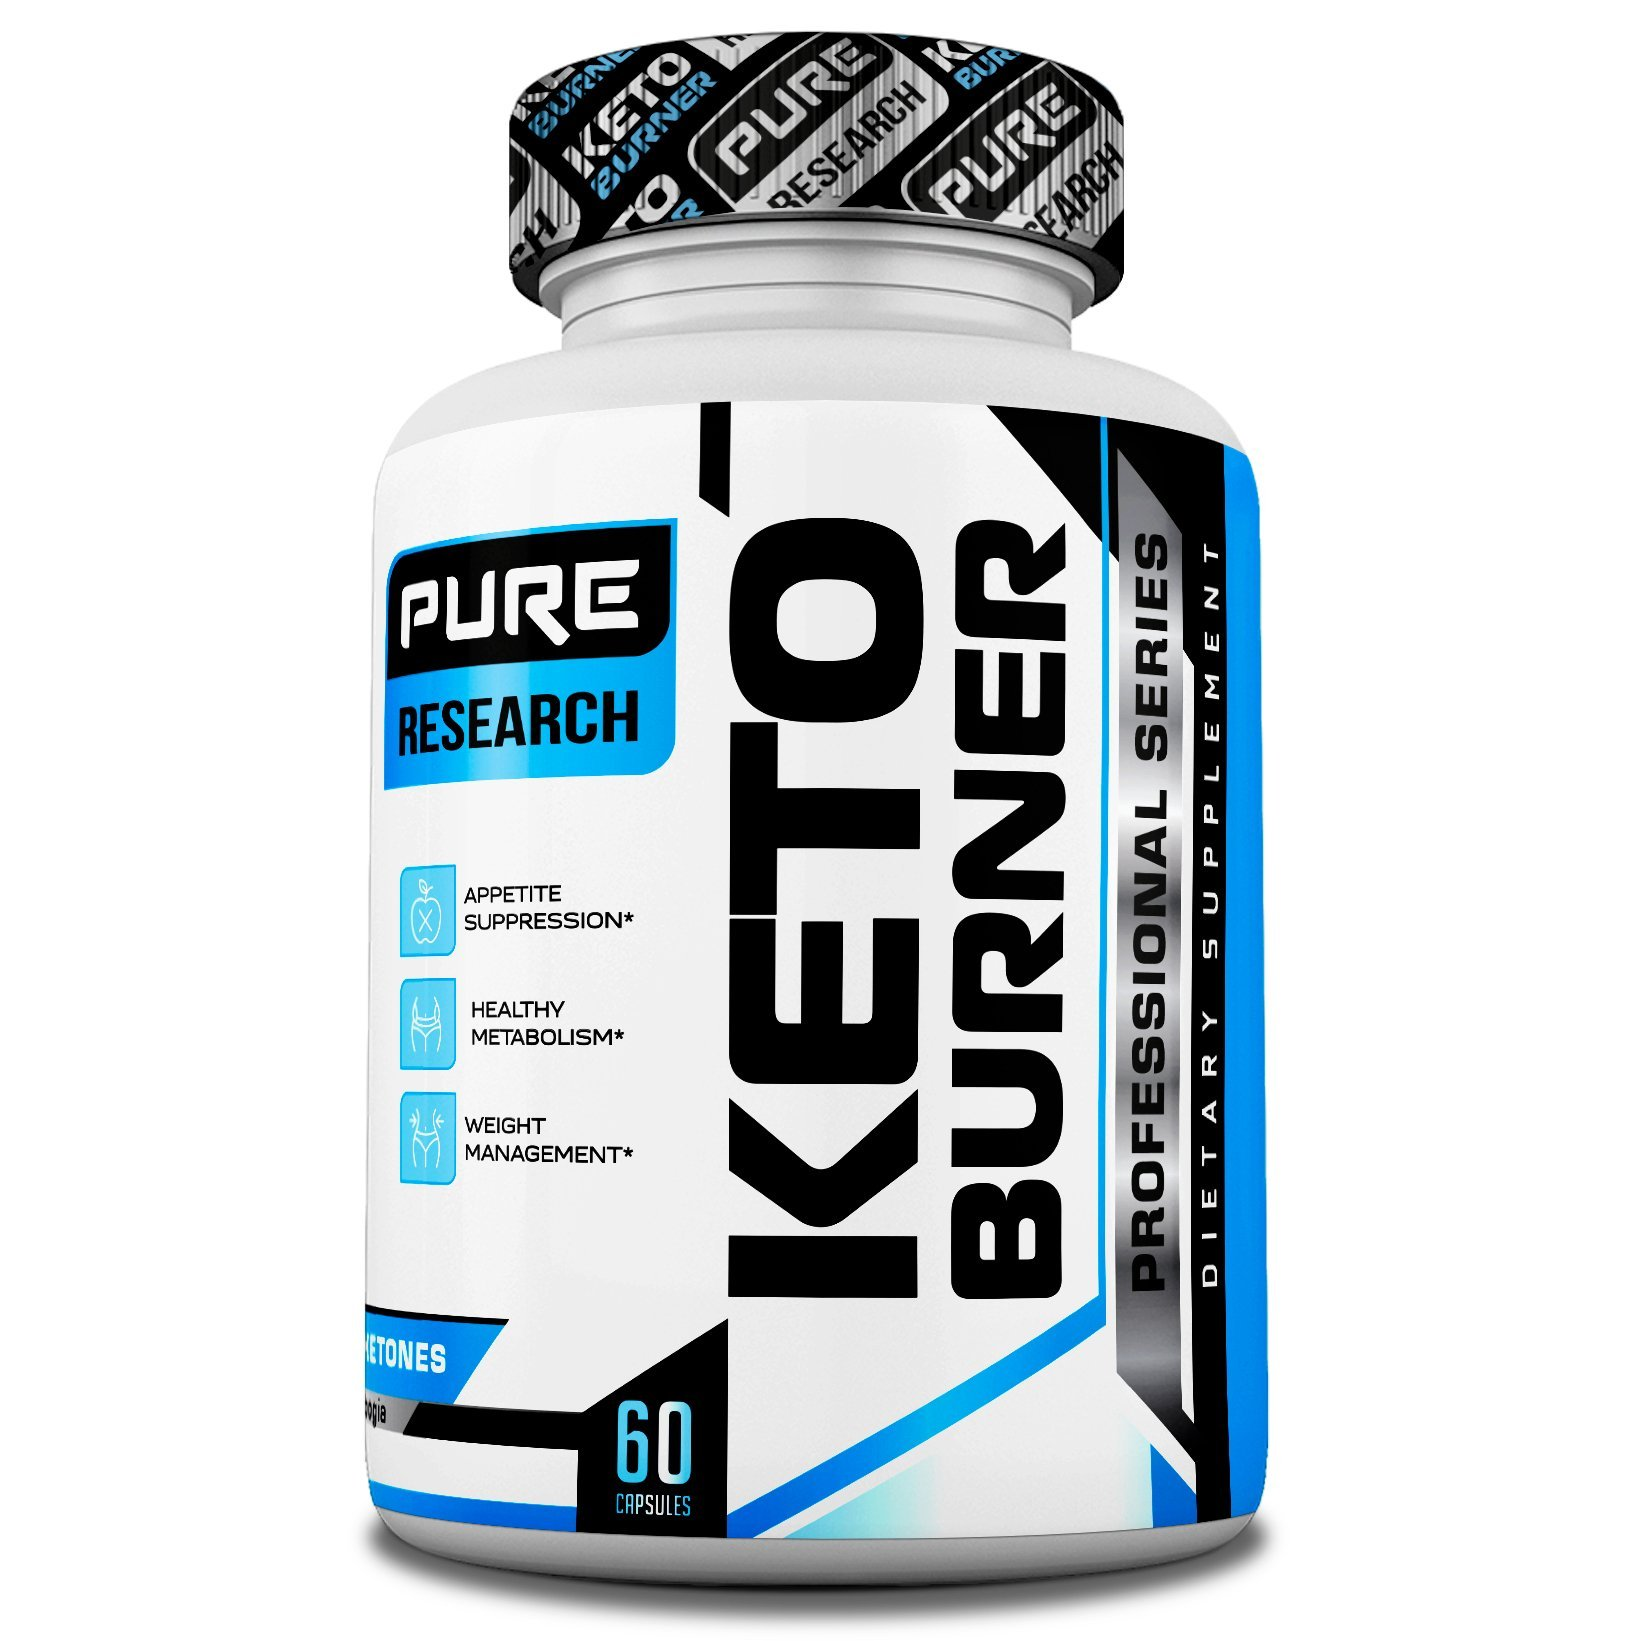 Keto Burner Weight Loss Pills for Women and Men, Burn More Calories & Block Carbs, Increase Your Energy, All Natural, 60 Veggie Caps by Pure Research